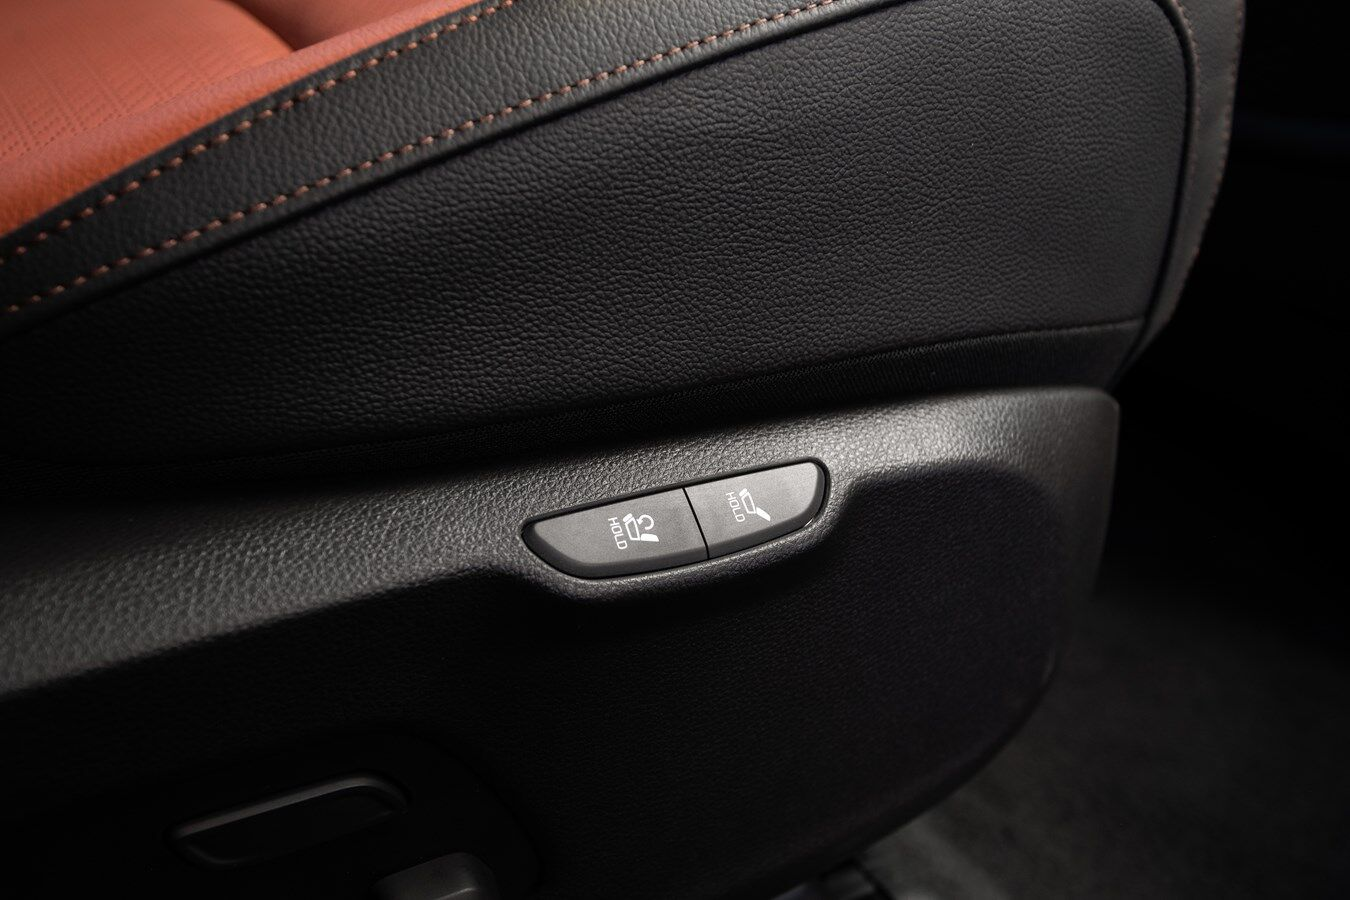 Seat buttons 2